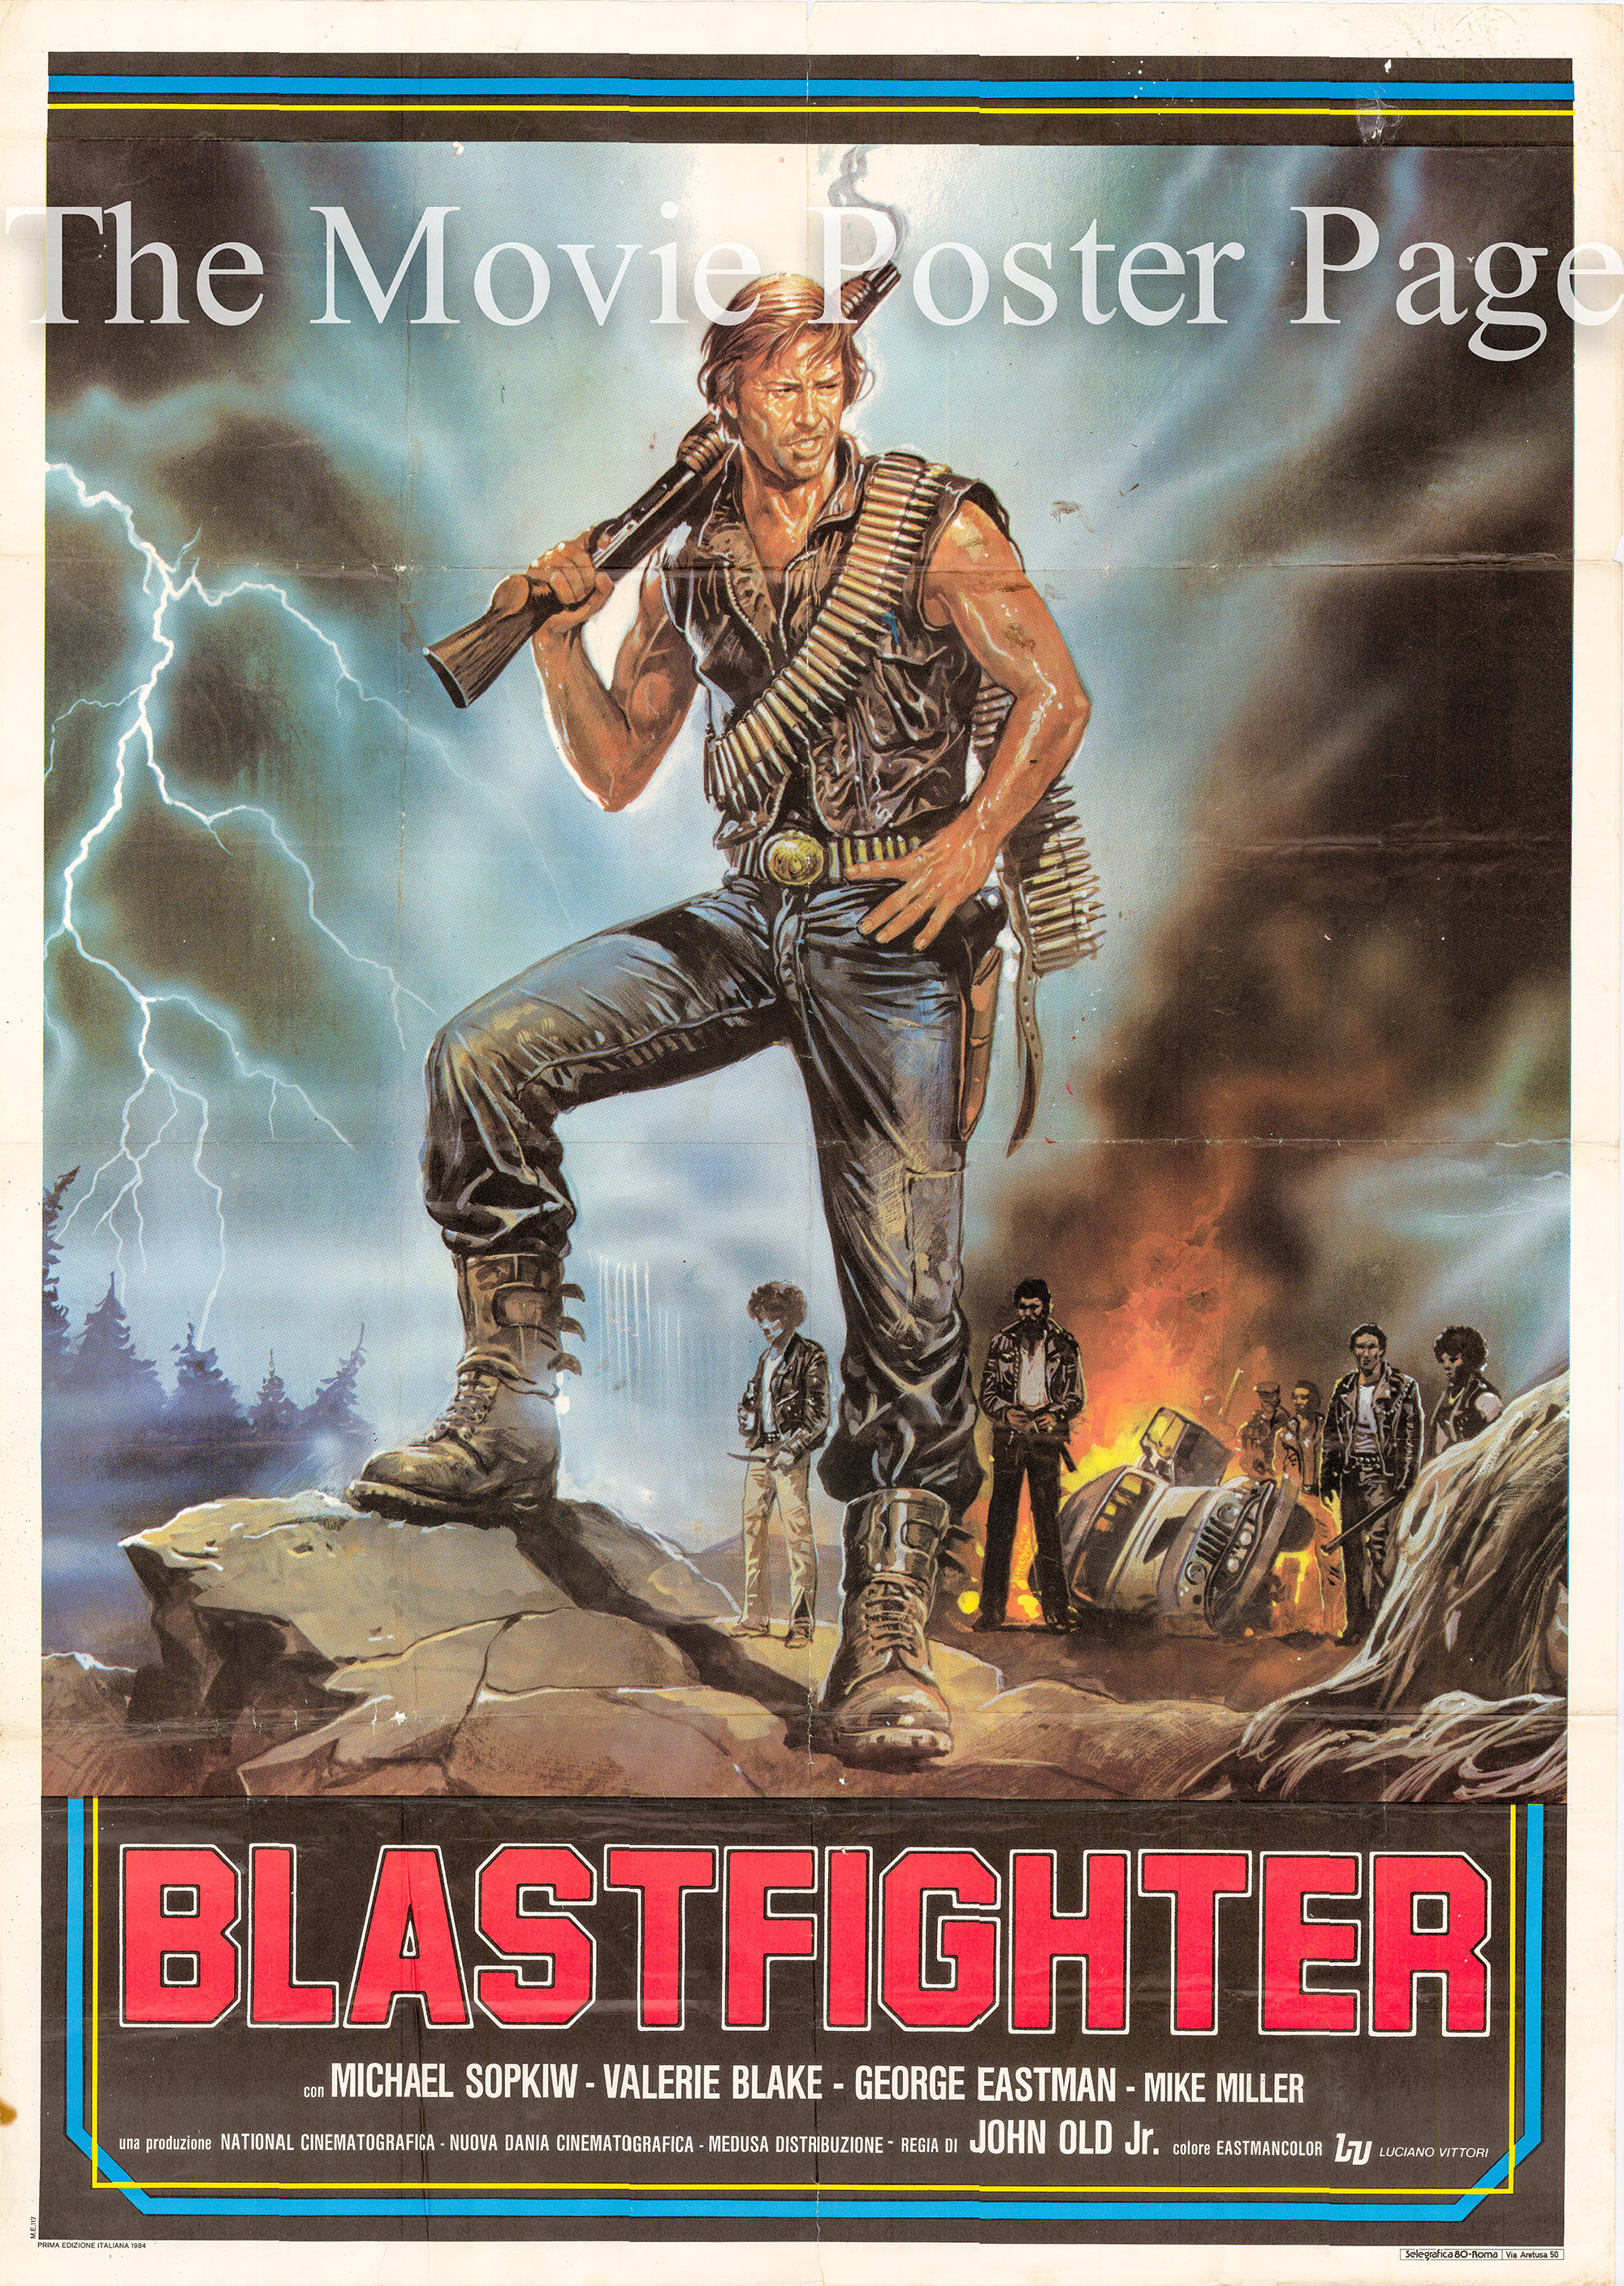 Pictured is an Italian two-sheet promotional poster for the 1984 Lamberto Bava film Blastfighter starring Michael Sopkiw.